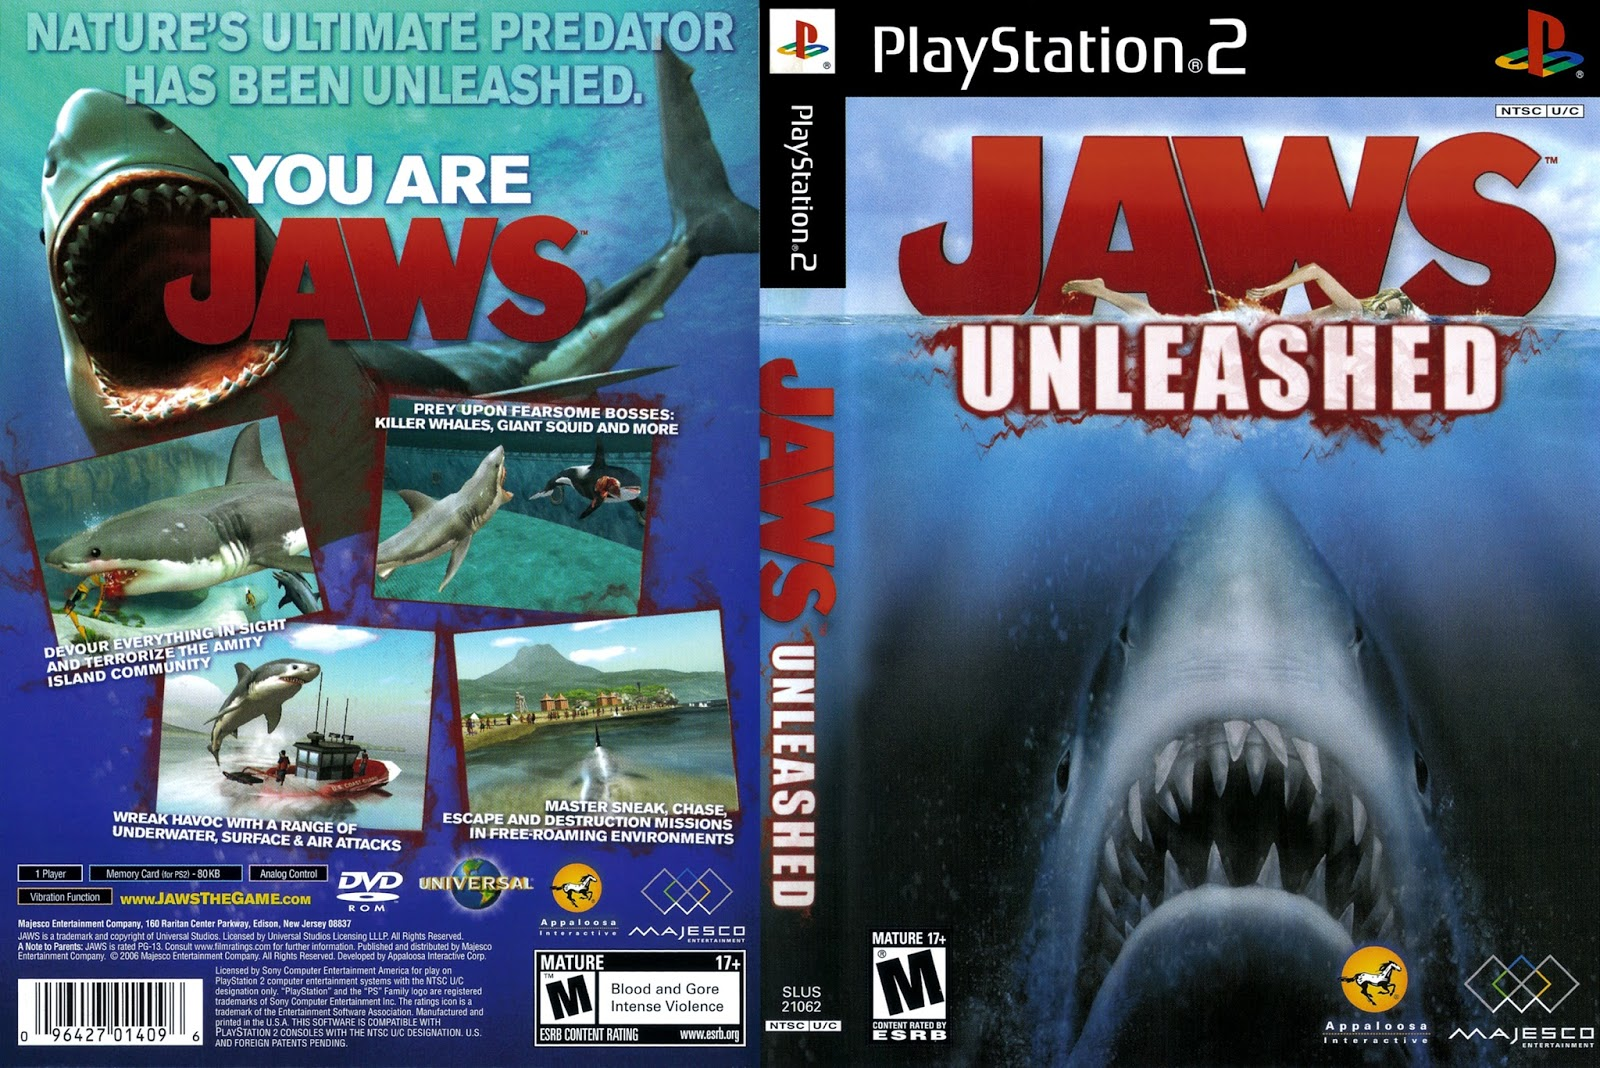 Jaws Unleashed - Wikipedia